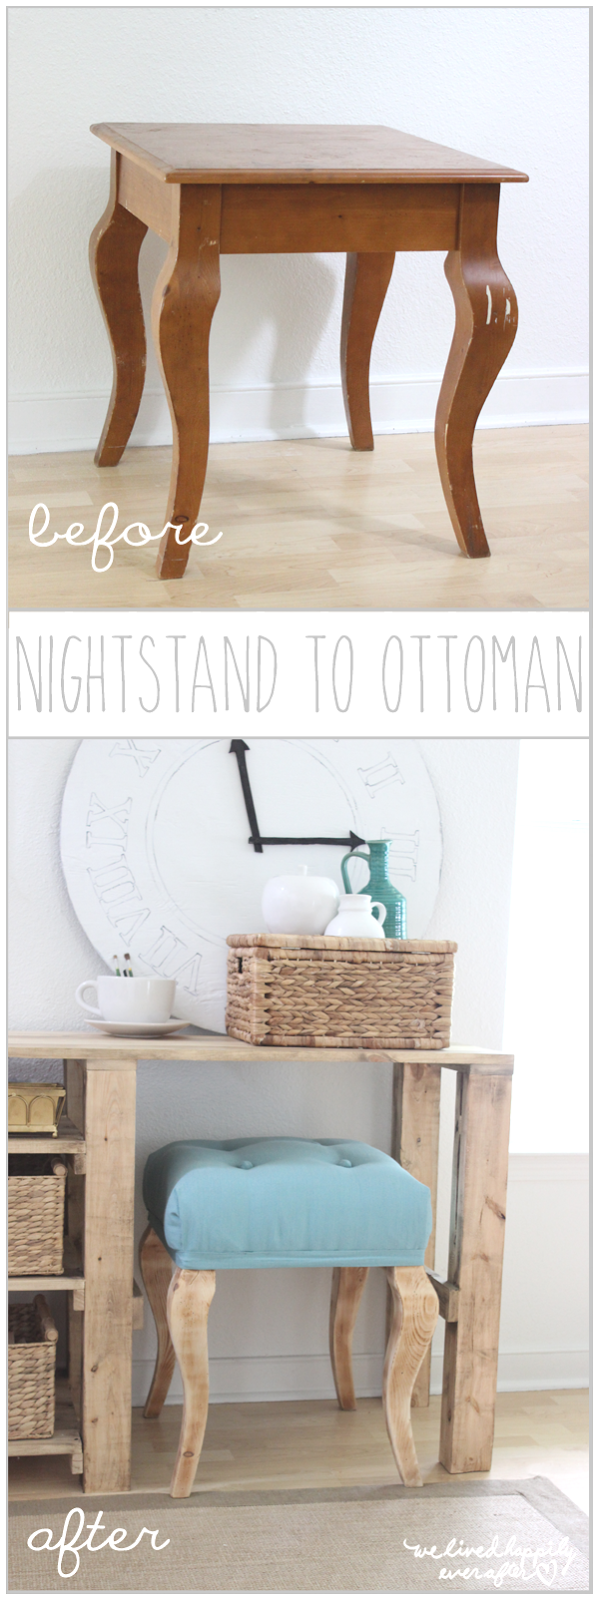 We Lived Happily Ever After Night Stand Tables Into Ottomans